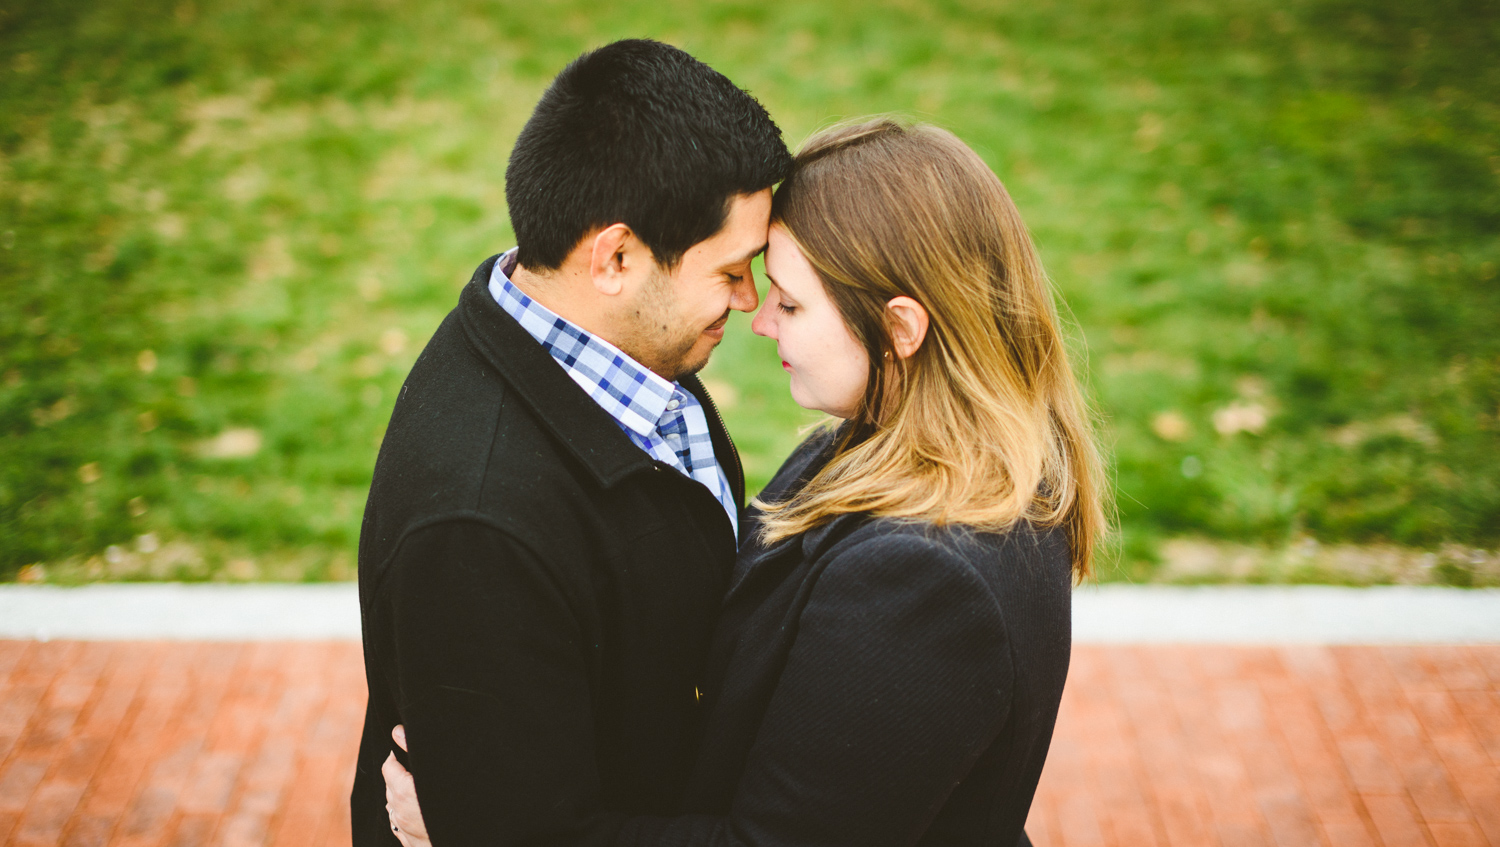 002 - couple embracing with green grass and red bricks behind them.jpg